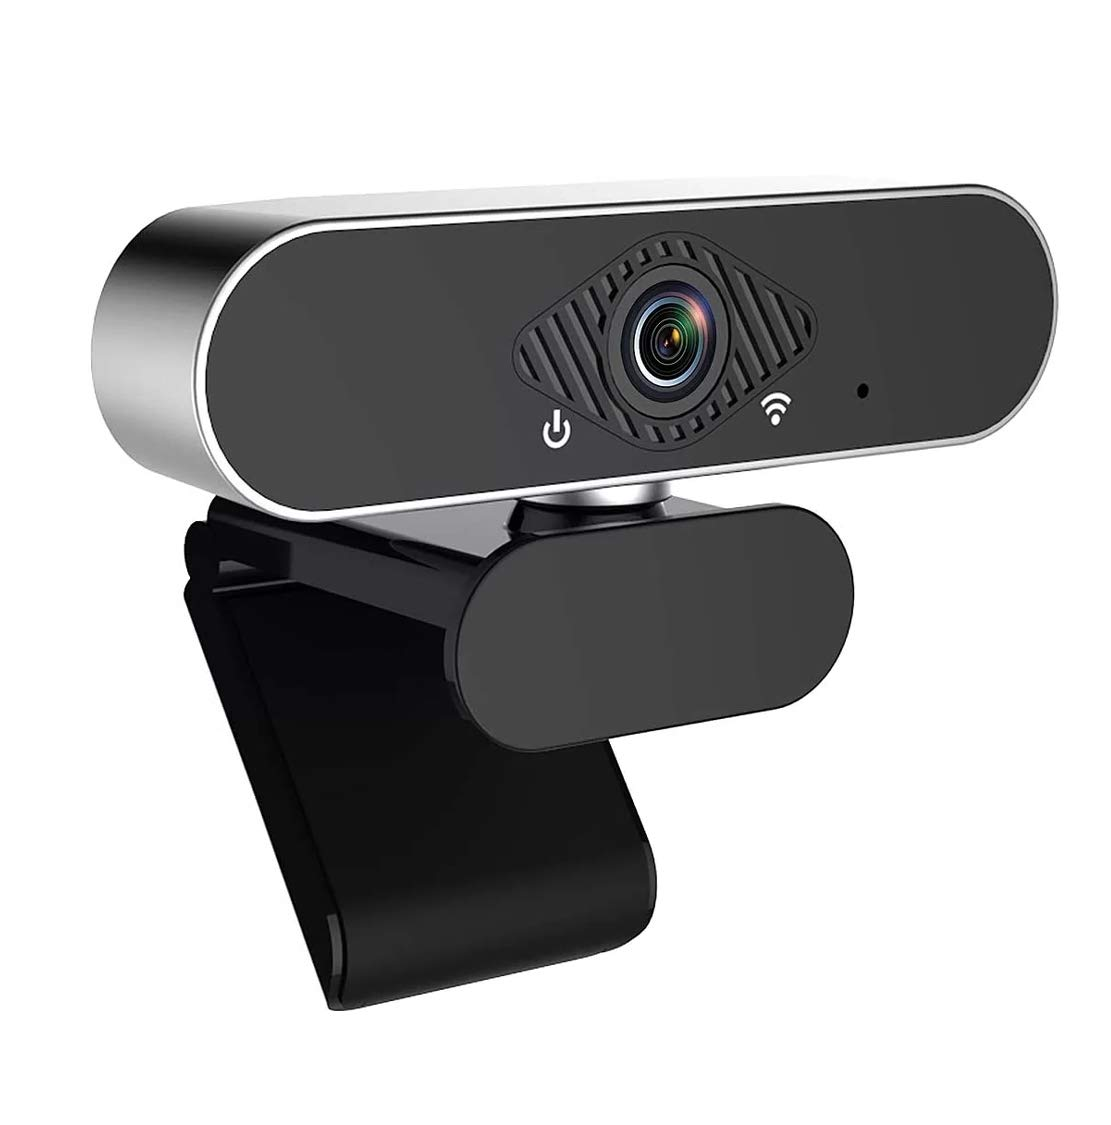 TECHNOVIEW 1080P Webcam with Microphone and Auto Focus | Full HD USB Web Camera with Tripod | Streaming Webcam for Desktop,PC or Laptop Video Calling Recording Conferencing | Plug and Play Web Camera